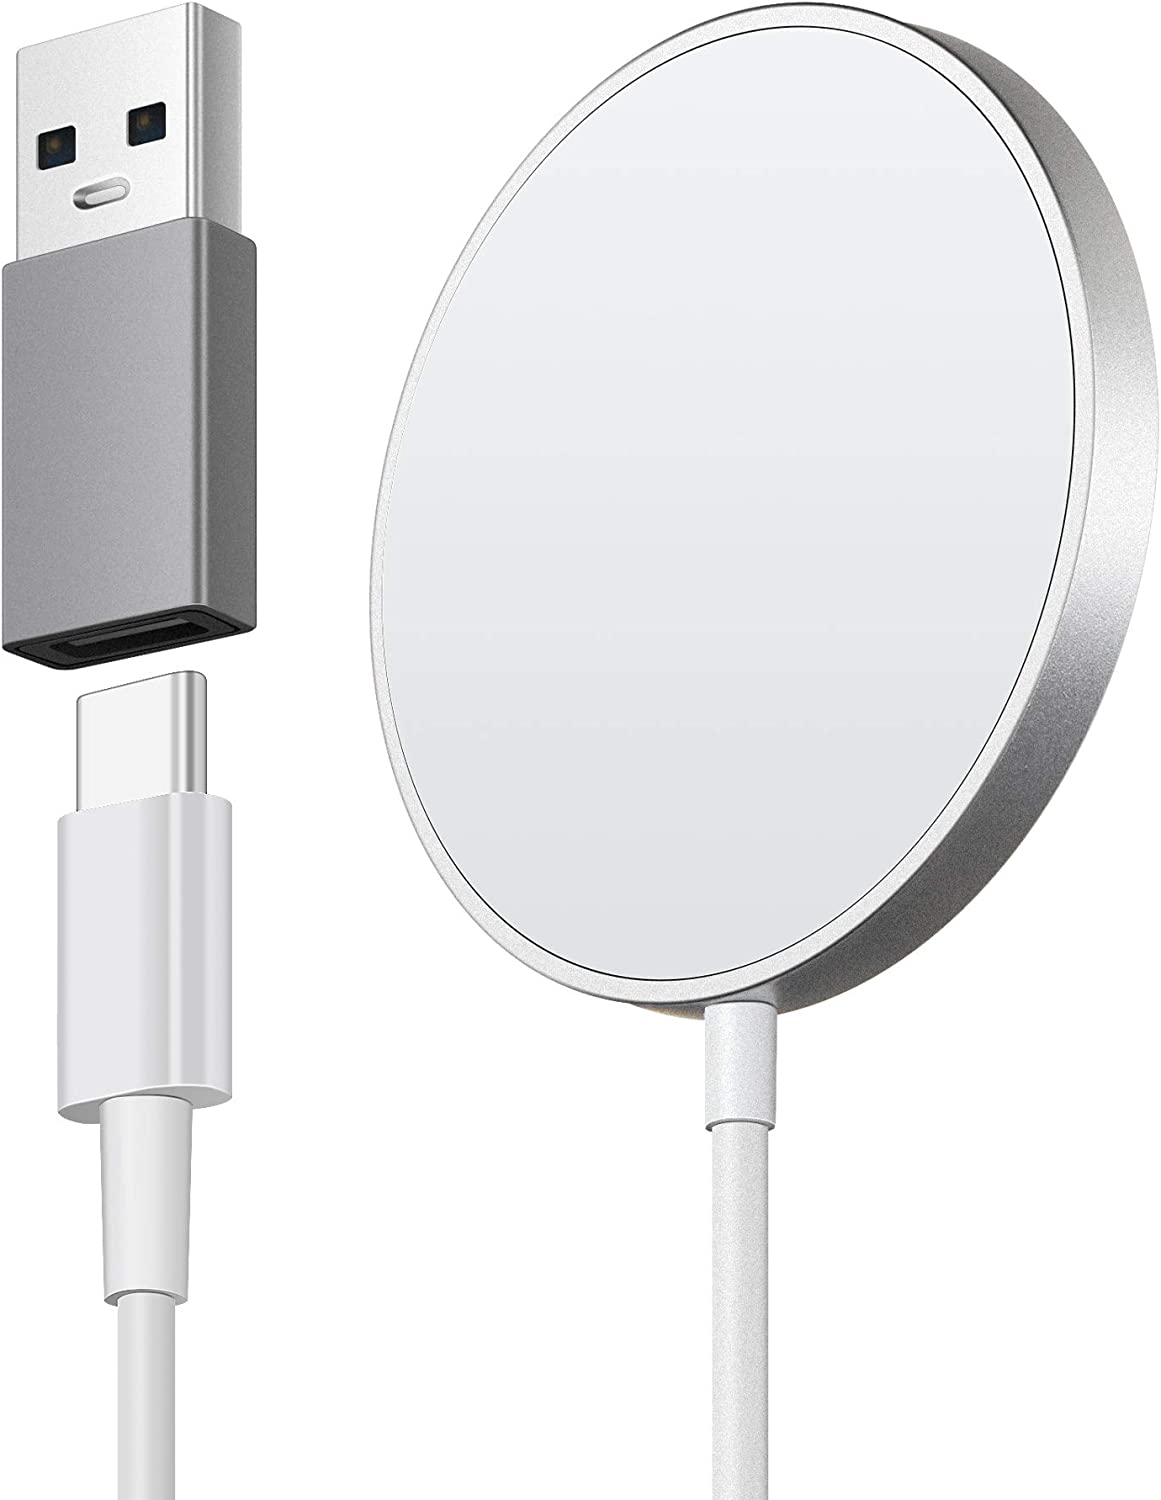 Wireless Charger Charging Pad 15W Max Fast Charging for iPhone 12/11/11 Pro/XS Max/XR/XS/X/8/8+, Galaxy Note 10/Note 10+/S10/S10+/S10E (No AC Adapter)